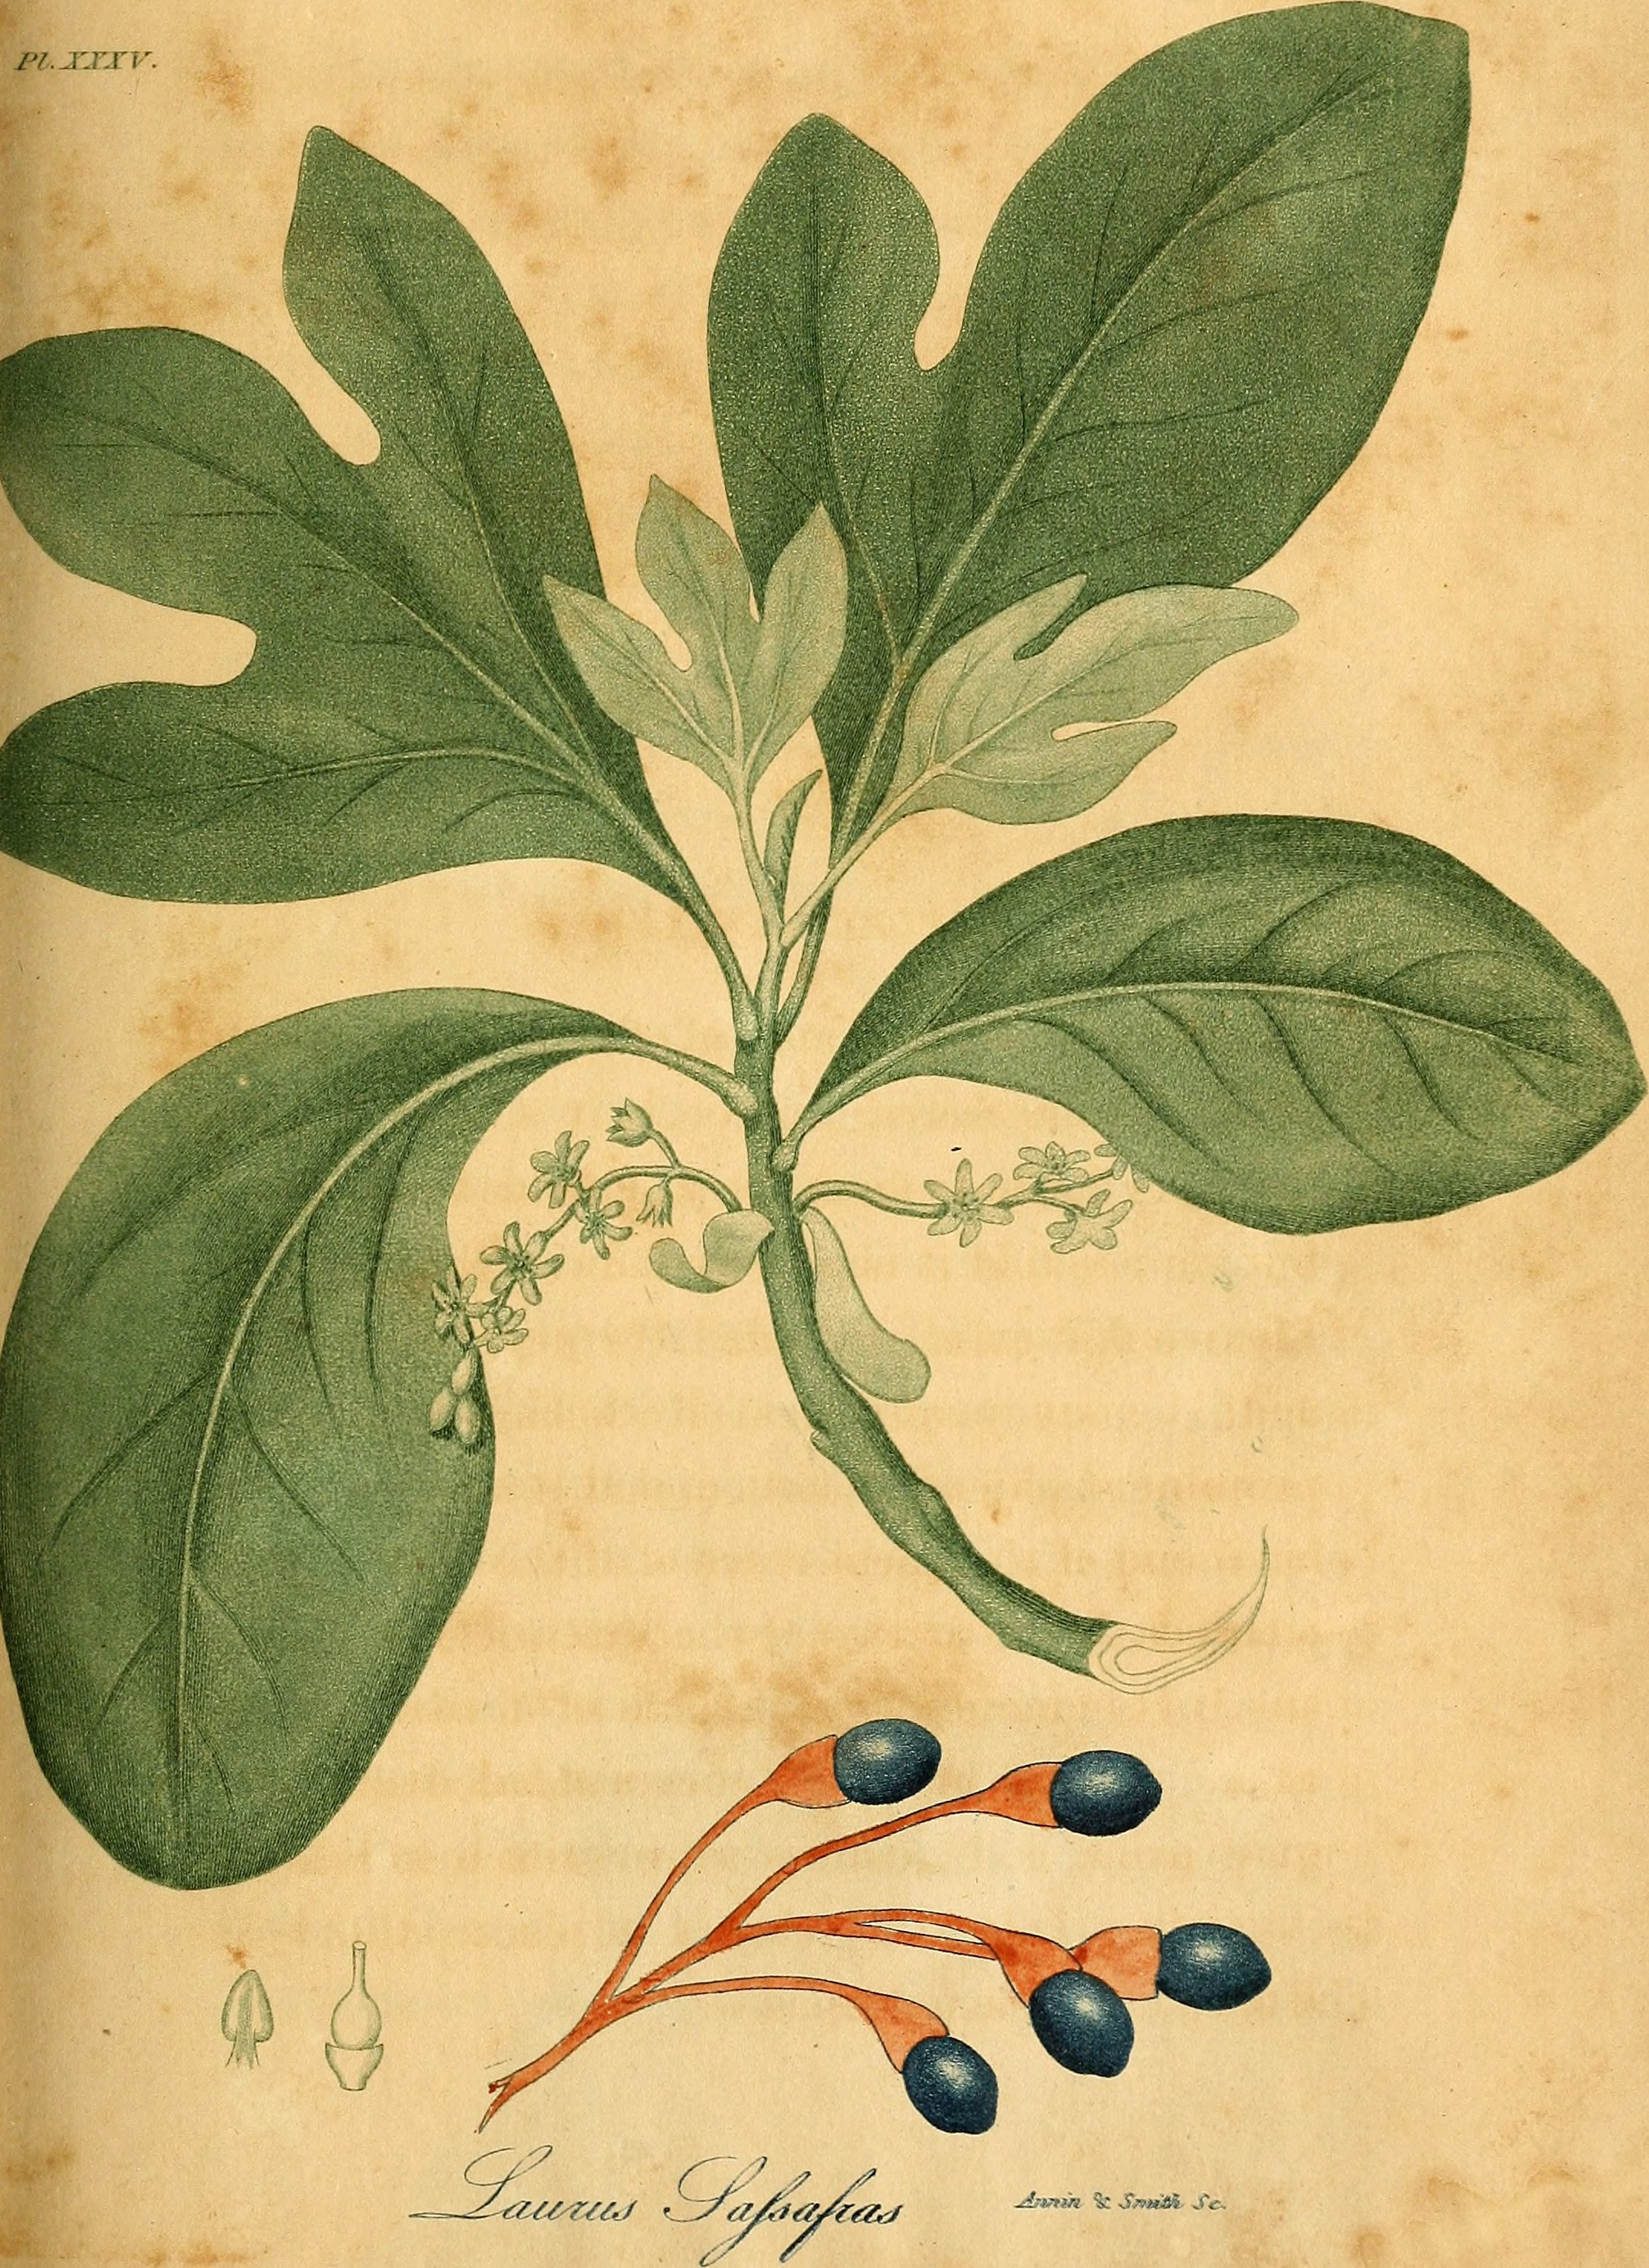 Medicinal plants and their details